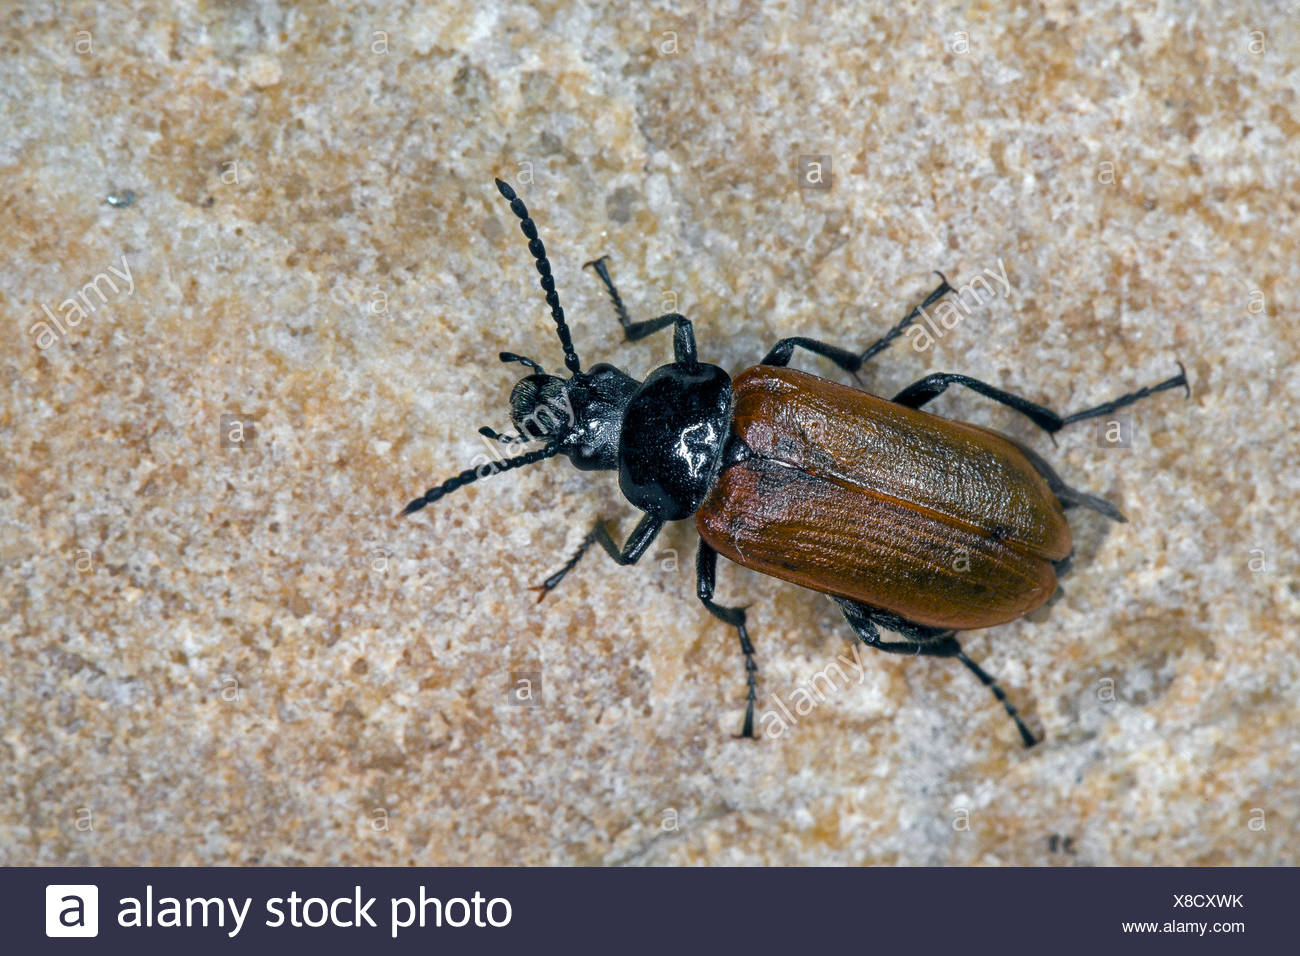 Comb-clawed beetle, Comb clawed beetle (Omophlus lepturoides, Odontomophlus lepturoides), on a stone, Germany - Stock Image